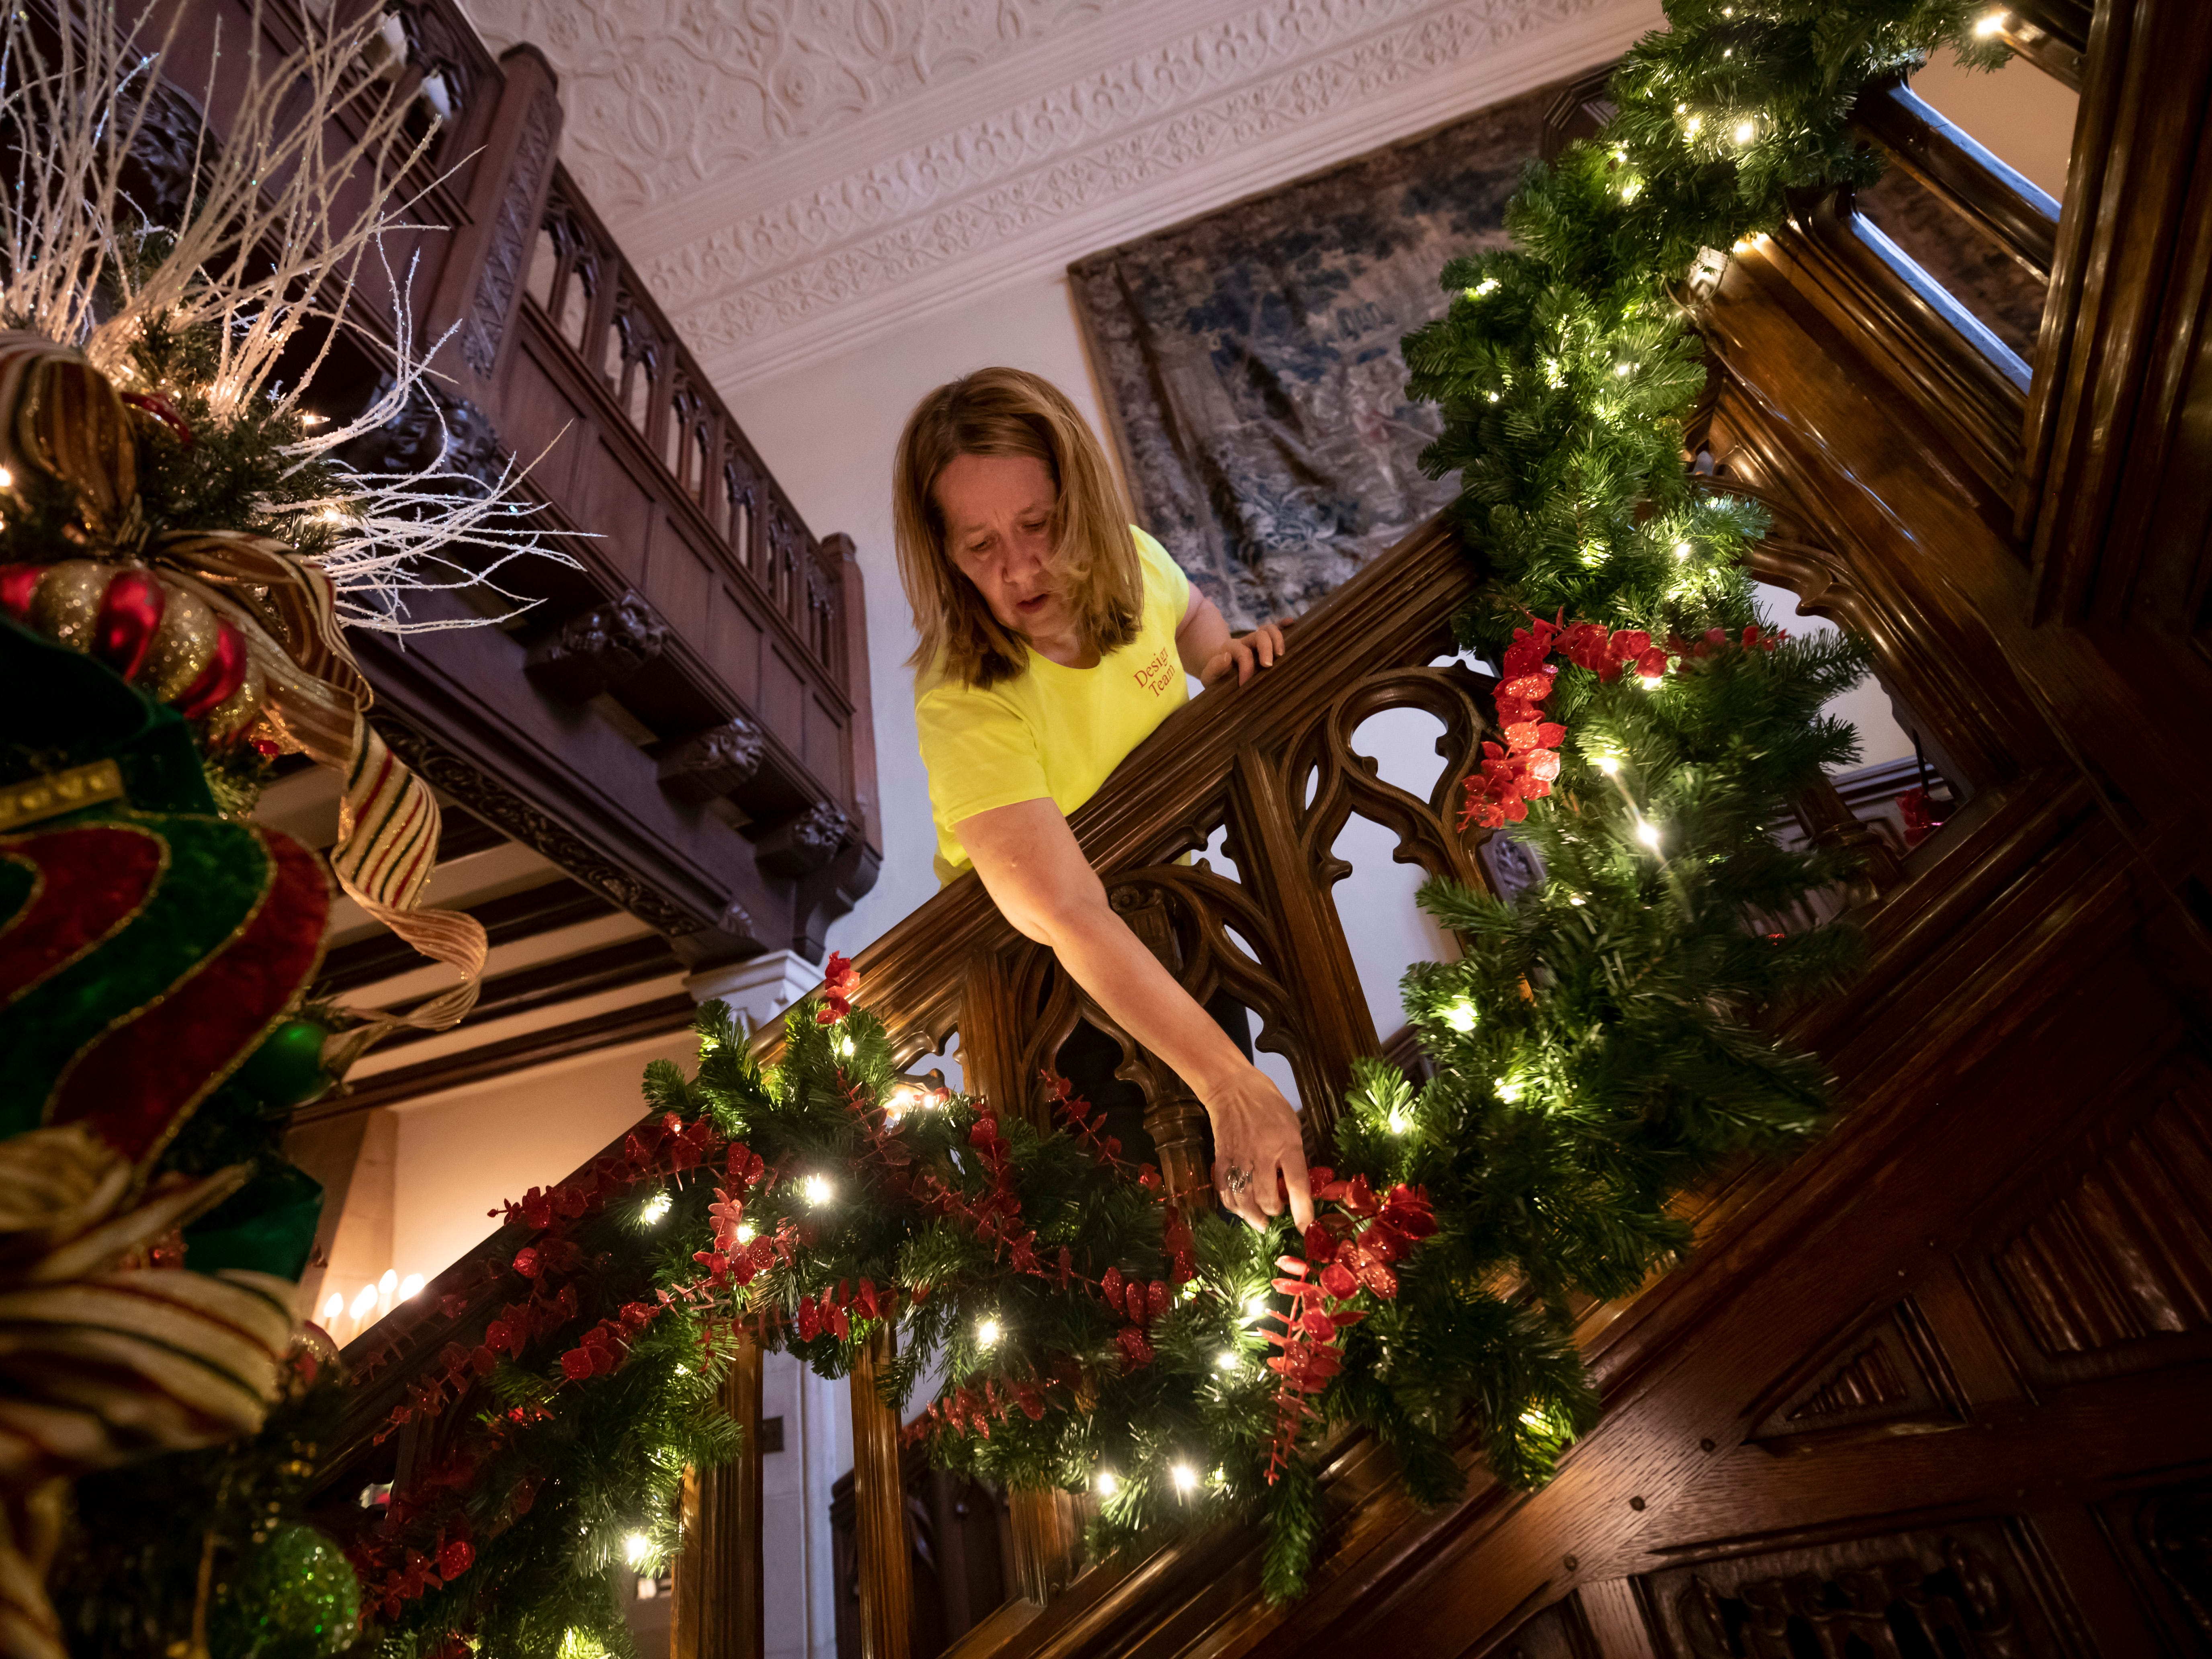 A different set of 'elves' work magic at Meadow Brook Hall